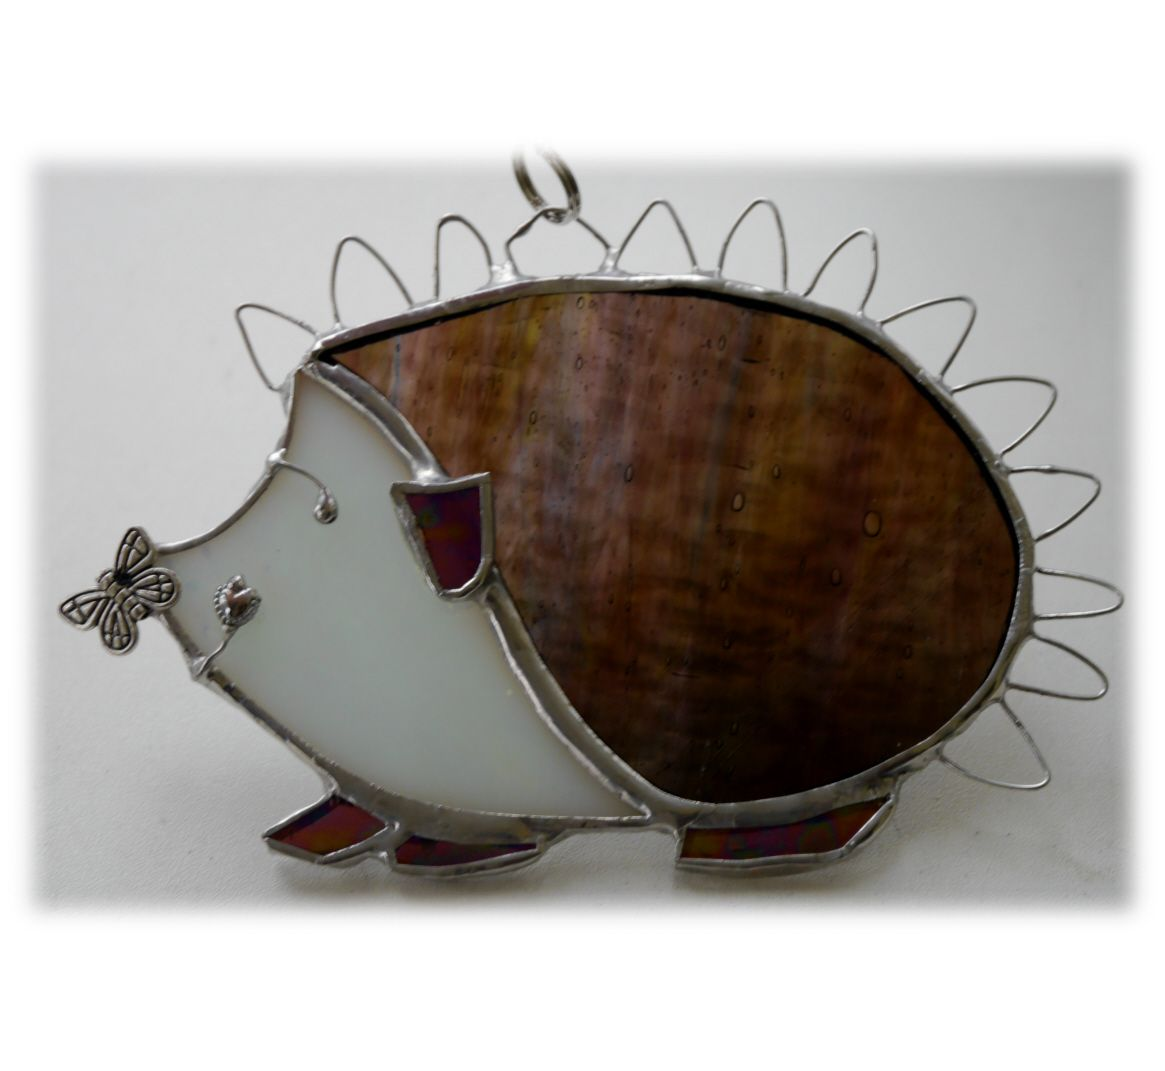 Hedgehog 031 #1711 FREE 11.50